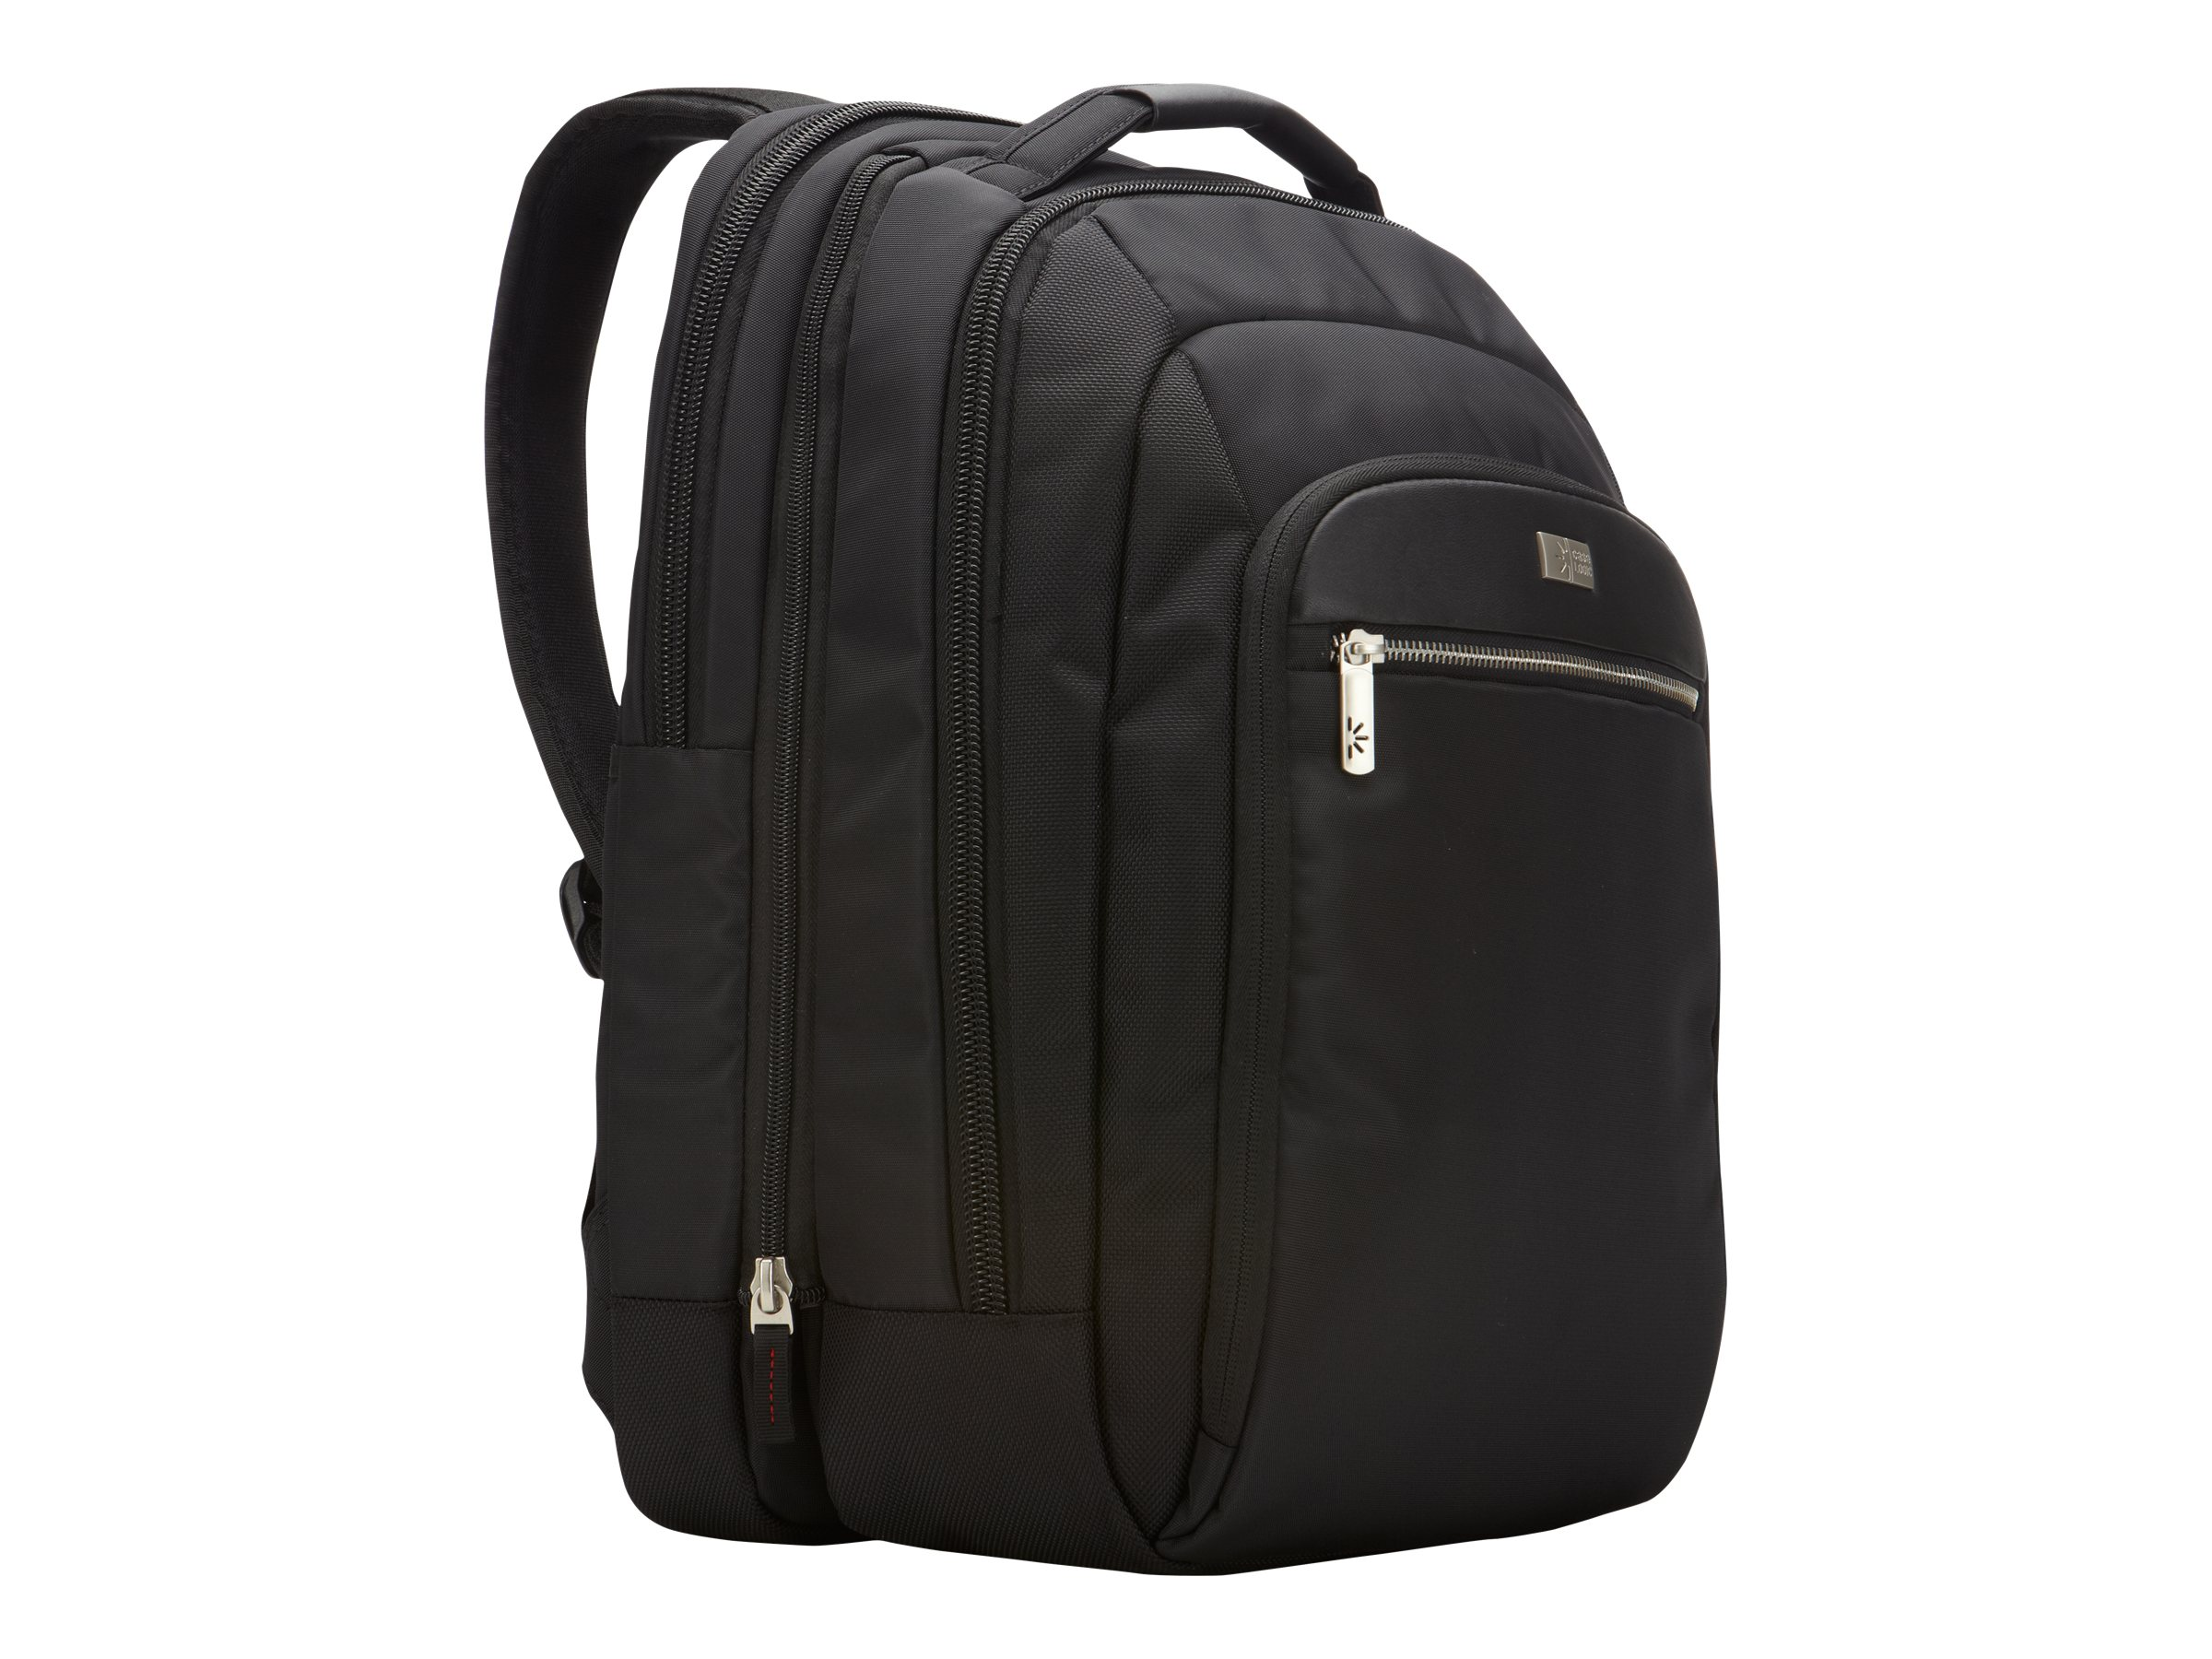 Case Logic Checkpoint Friendly 16 Laptop Backpack, Black, CLBS-116Black, 9564822, Carrying Cases - Notebook